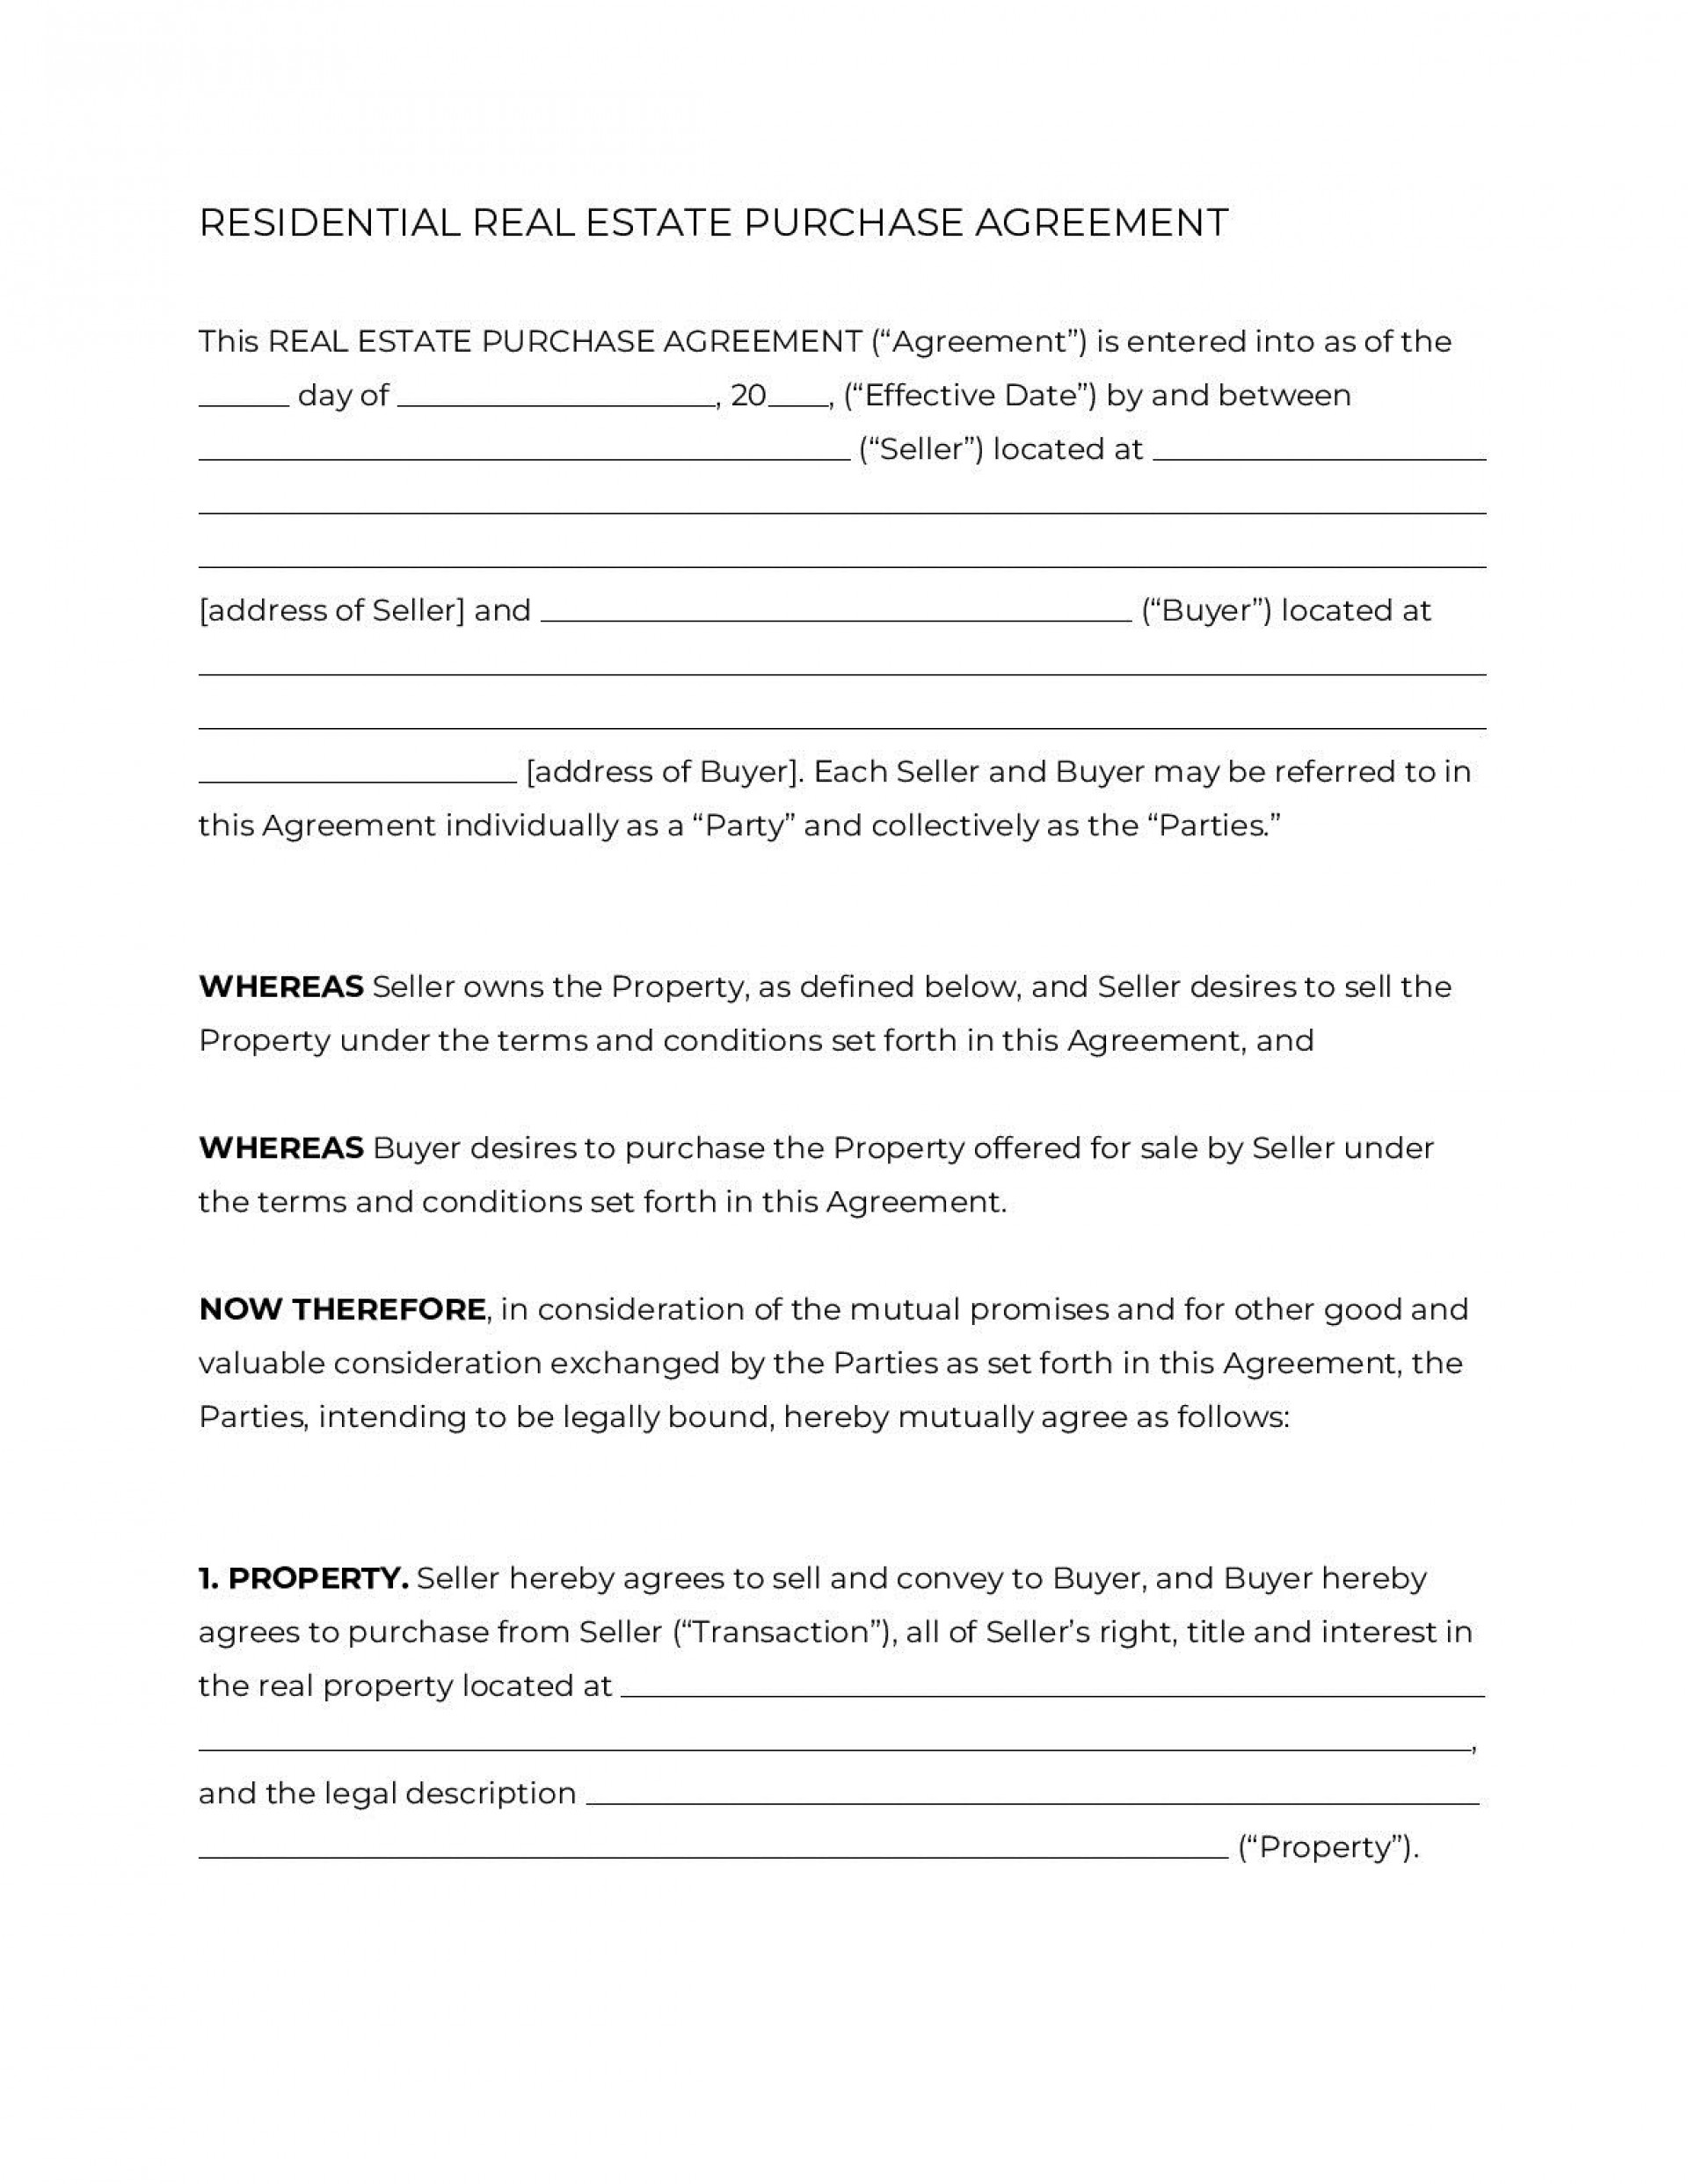 007 Dreaded Home Purchase Contract Template Design  Virginia Form Lease To Commercial Property1920